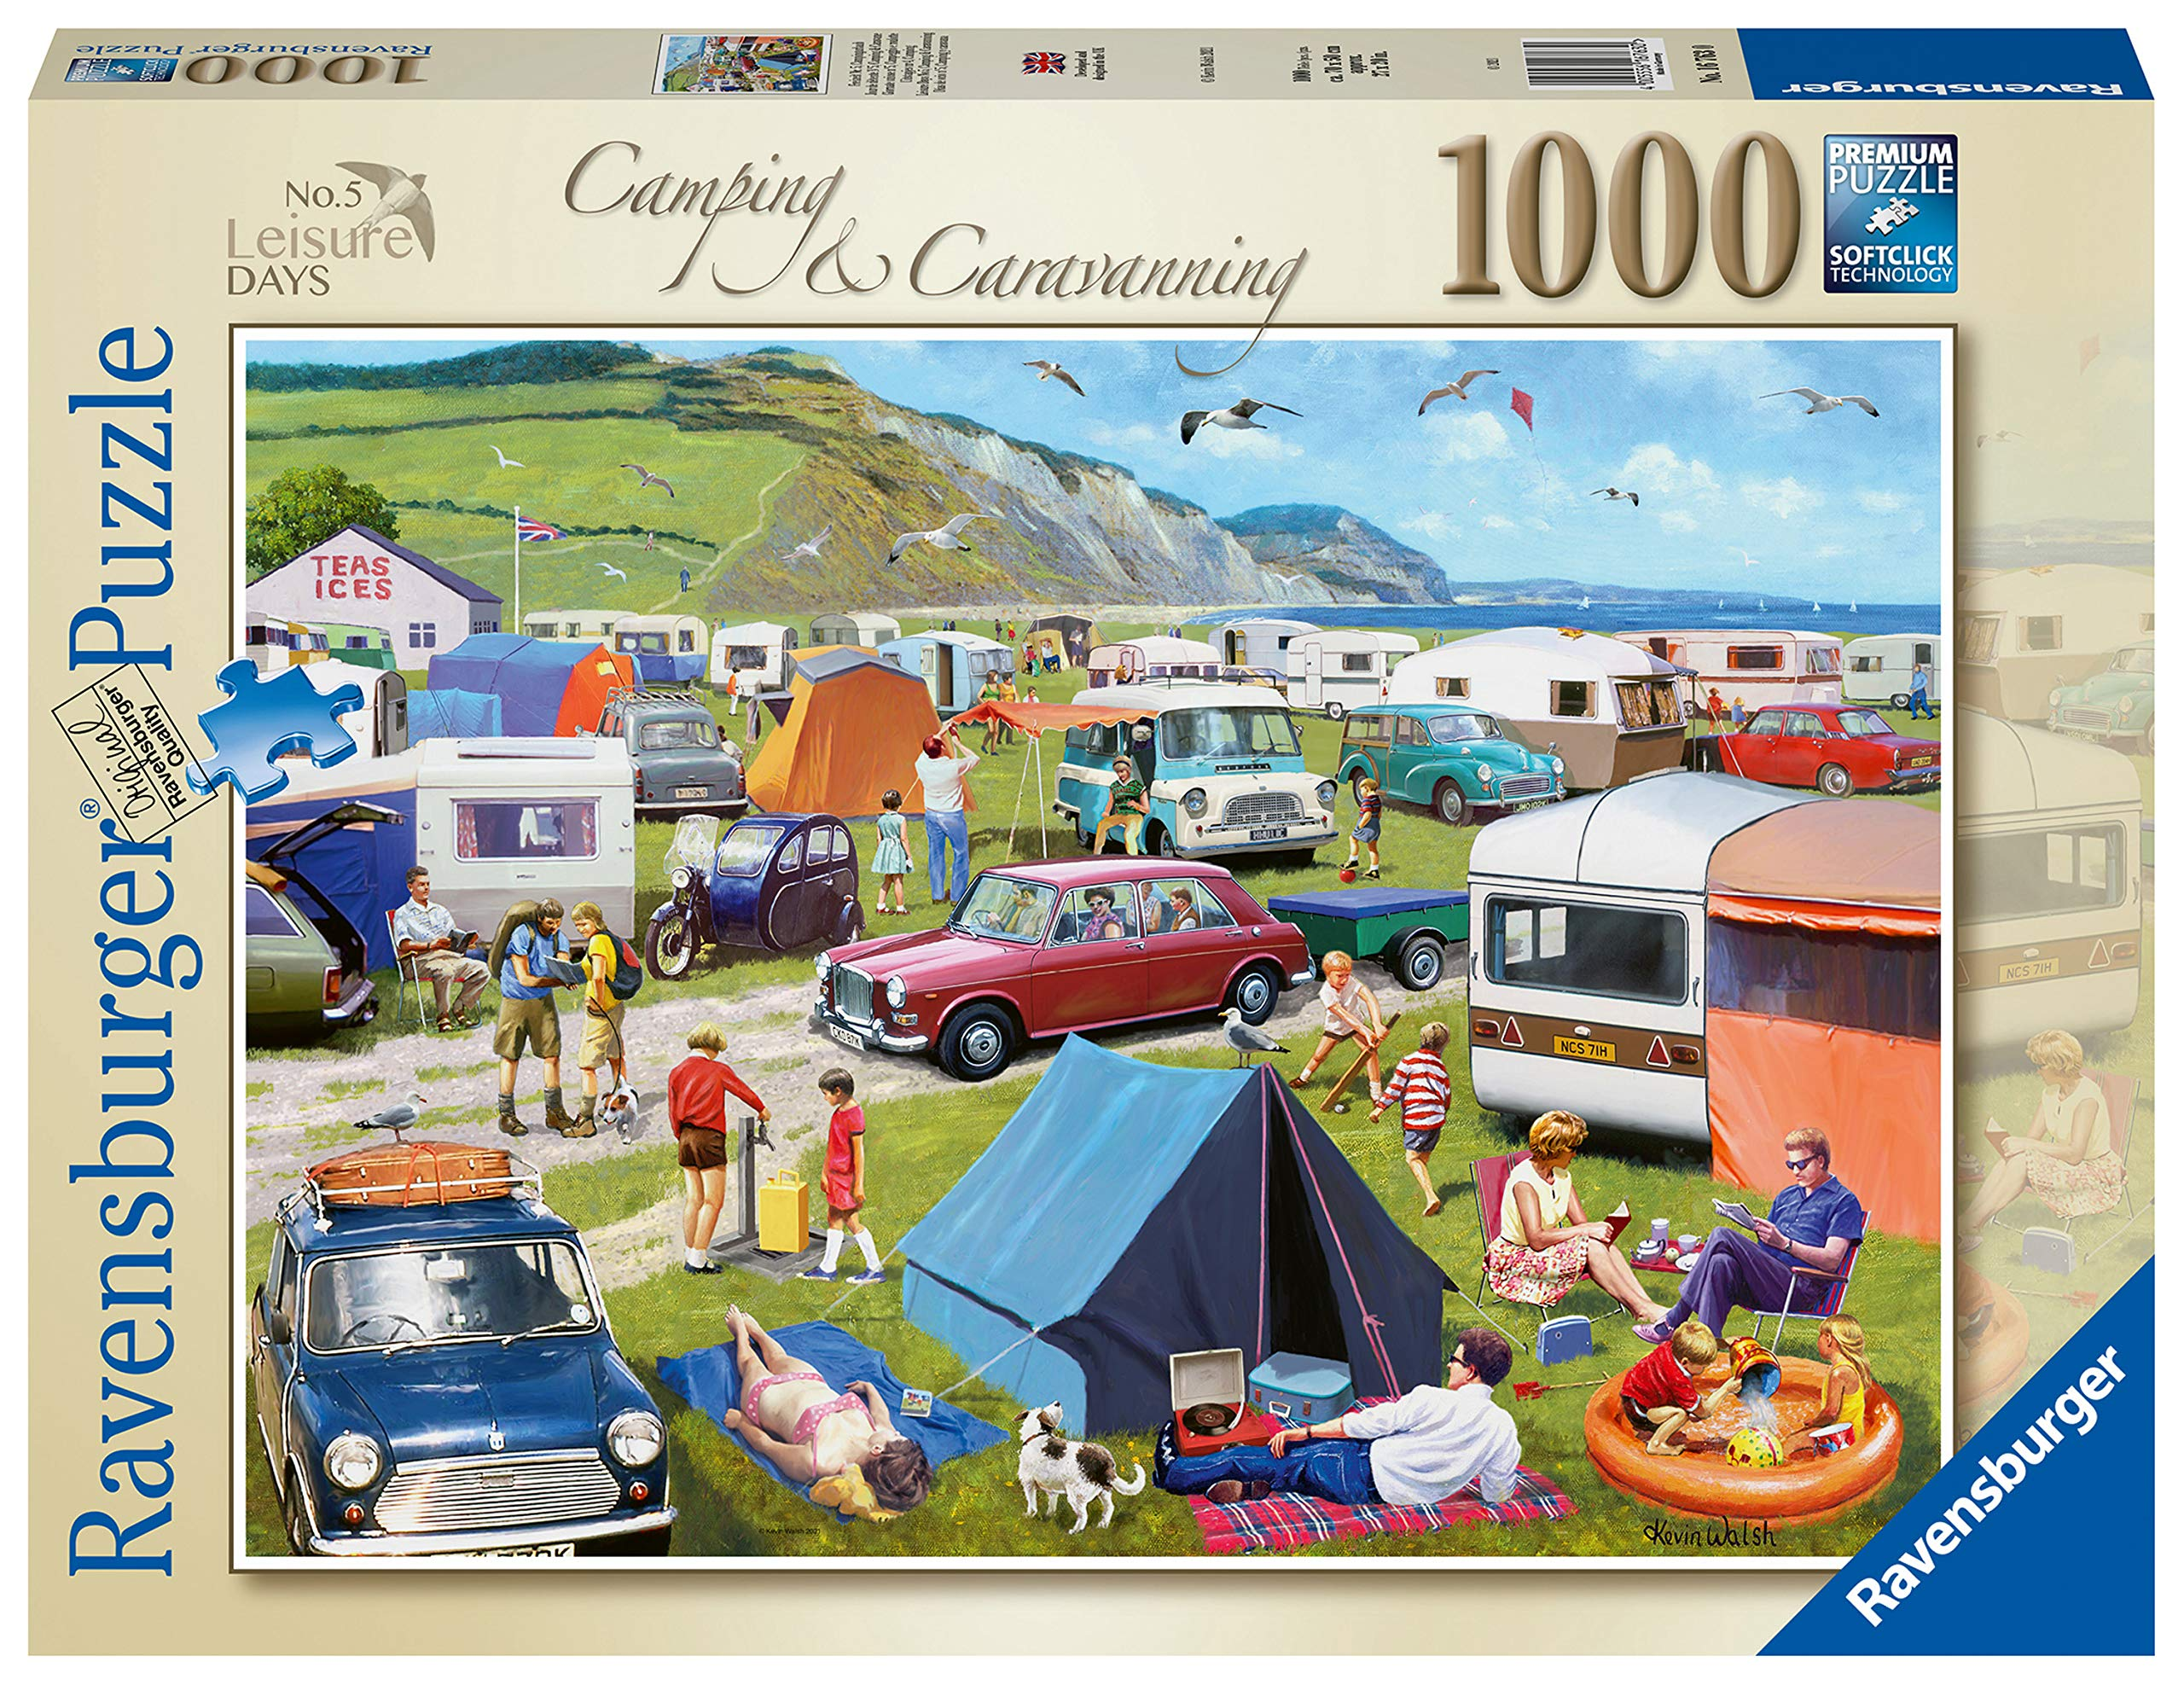 Ravensburger Leisure Days No.5 Camping & Caravanning 1000 Piece Jigsaw Puzzle for Adults Age 12 Years Up